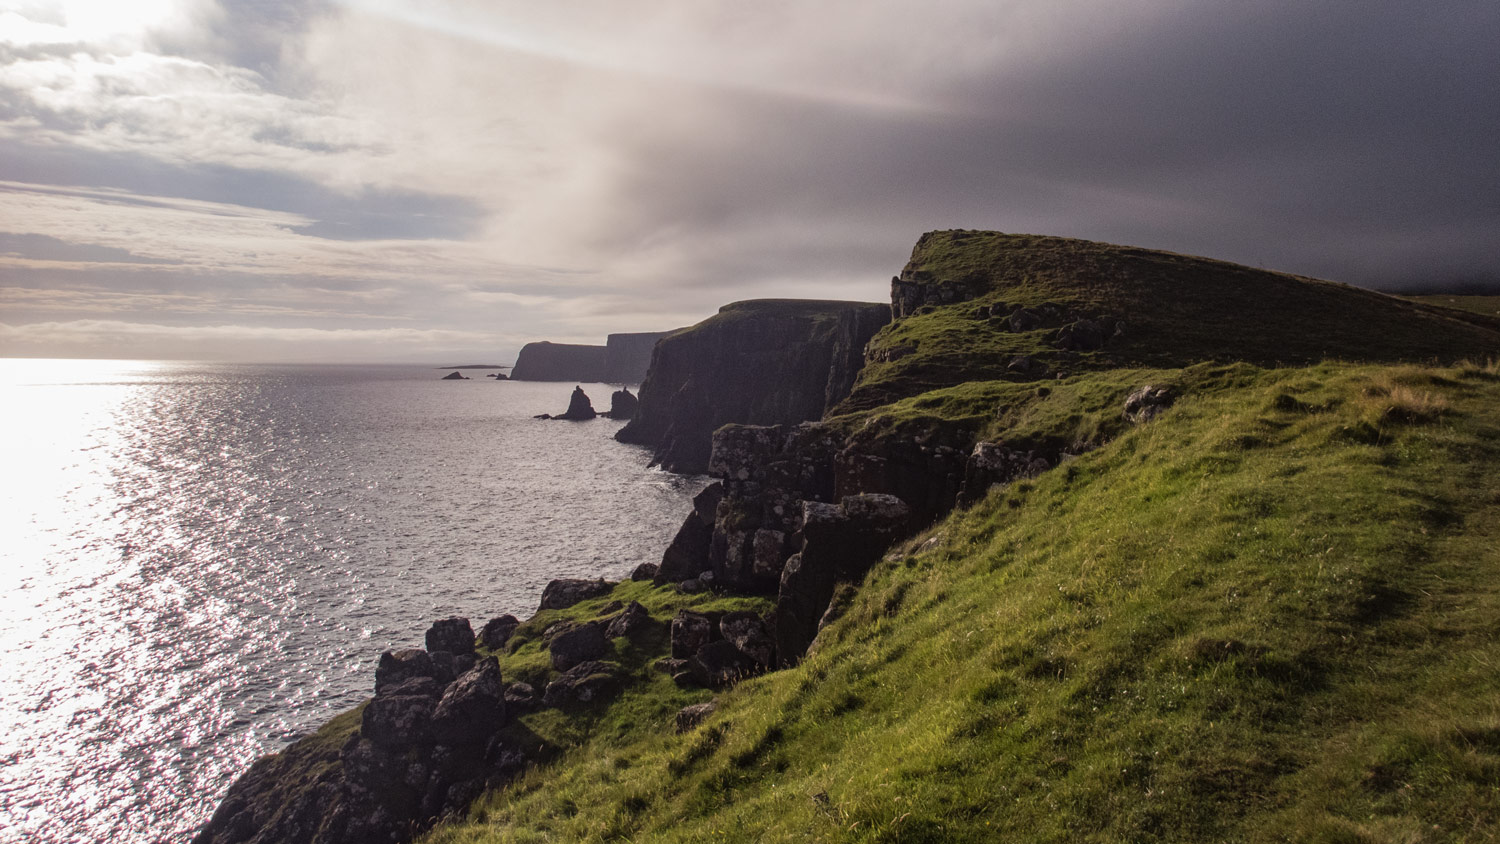 The cliffs on the north coast of Skye are a remarkable place to walk along.